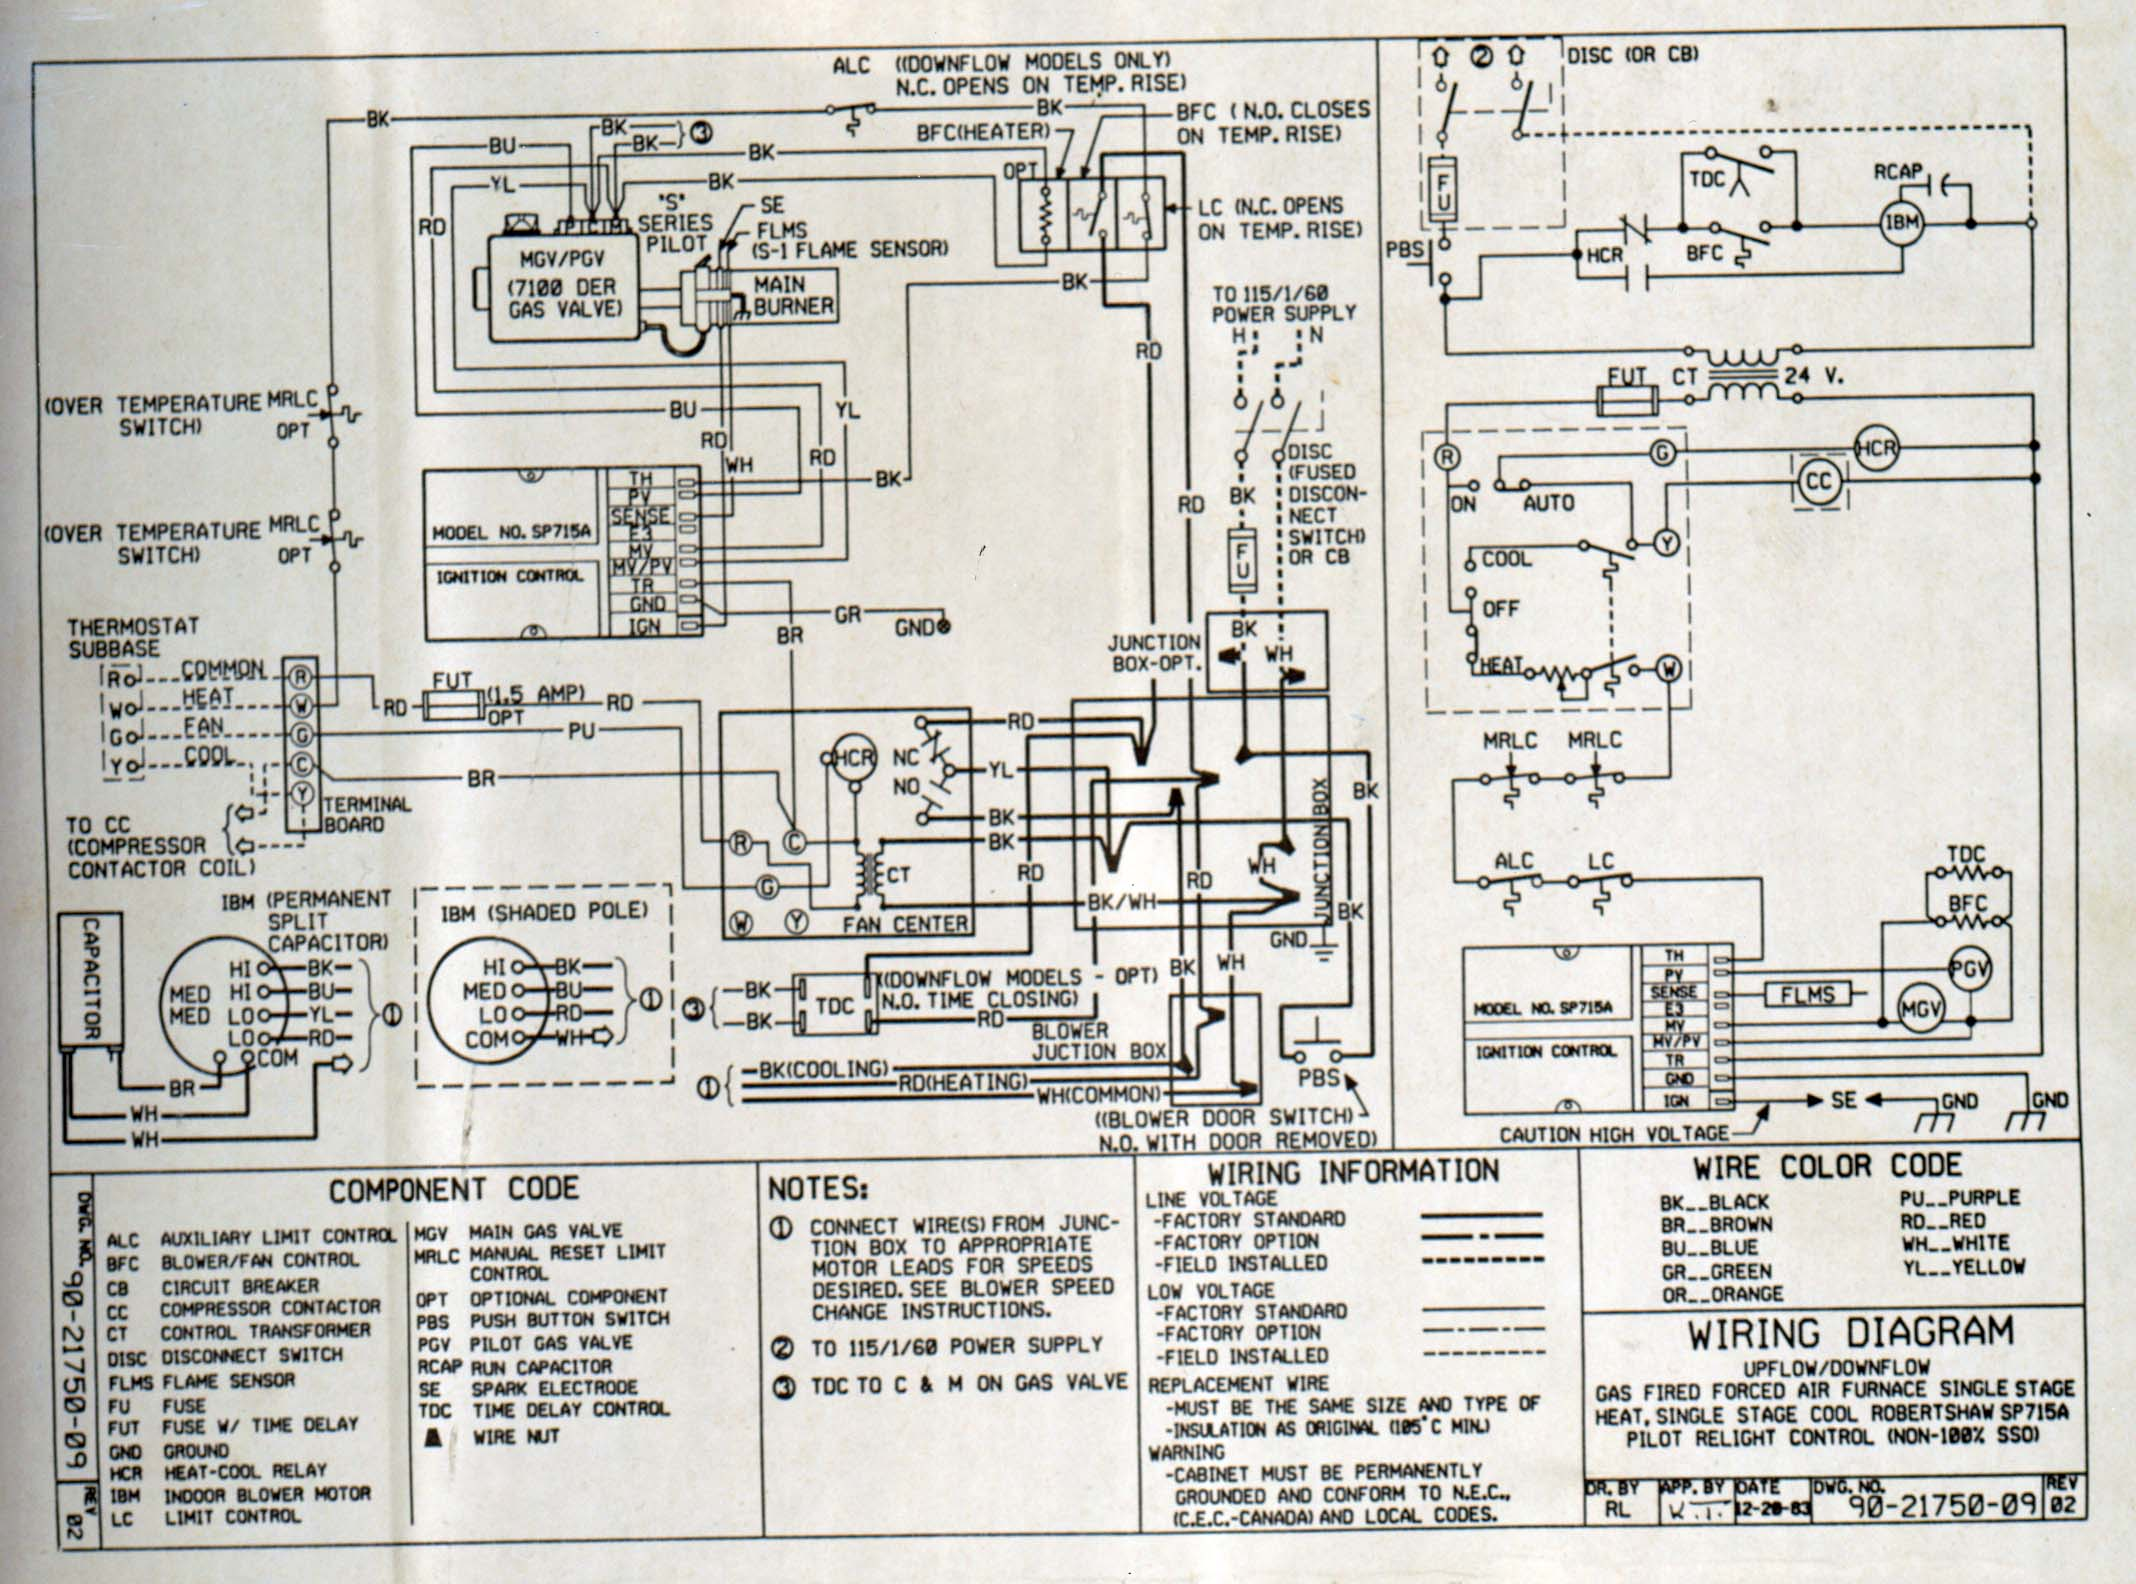 carrier ac wiring diagram carrier image wiring diagram carrier ac wiring diagram carrier auto wiring diagram schematic on carrier ac wiring diagram